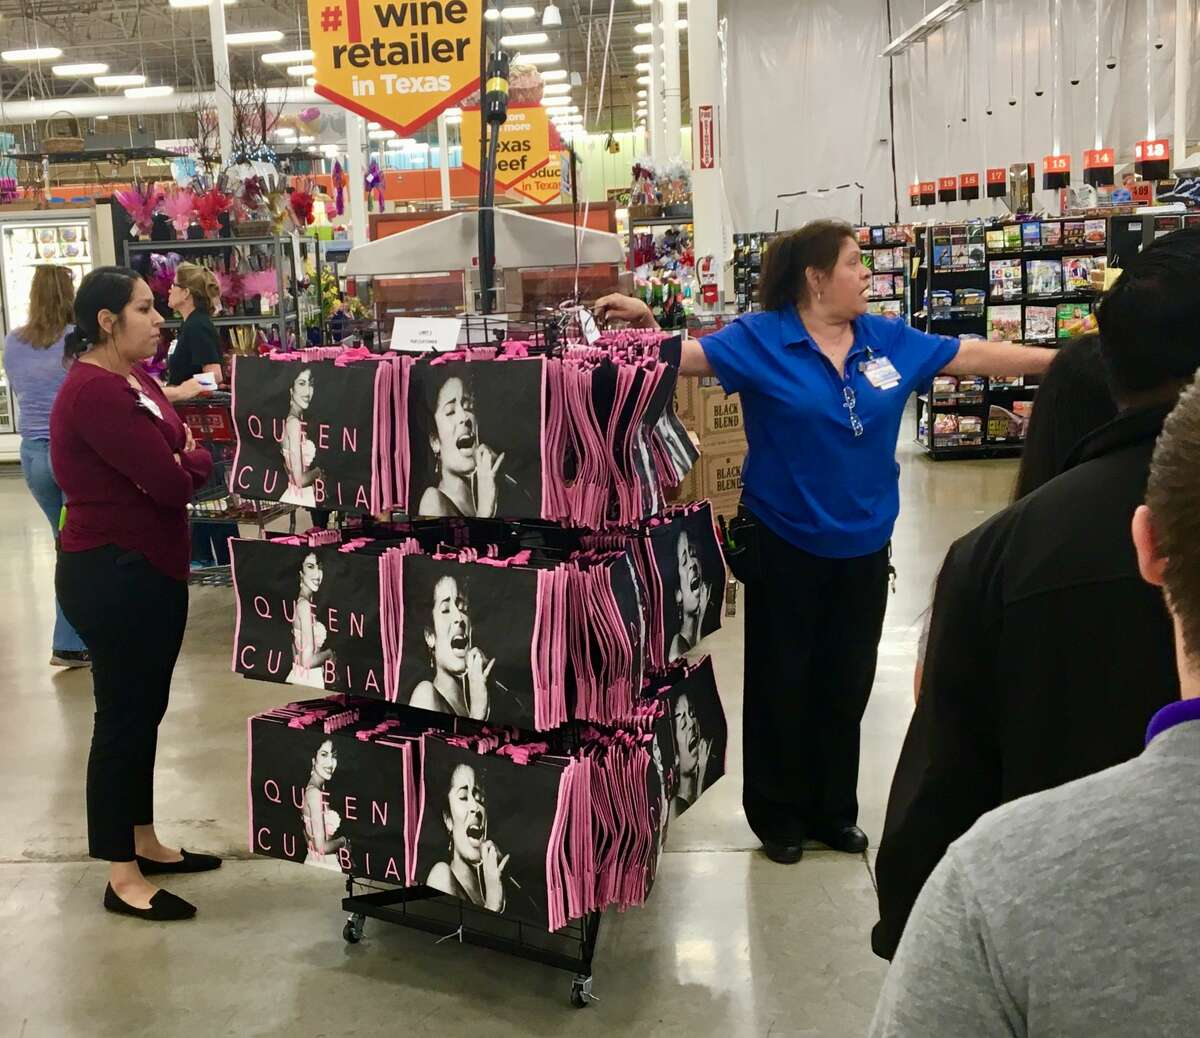 2. When H-E-B released Selena tote bags As expected, long lines formed at H-E-B's across the city when the Tejano Queen's tote bags were released in March 2018. Bags reportedly sold out by 9:15 a.m. at one store- 15 minutes after they went on sale. Read more here.